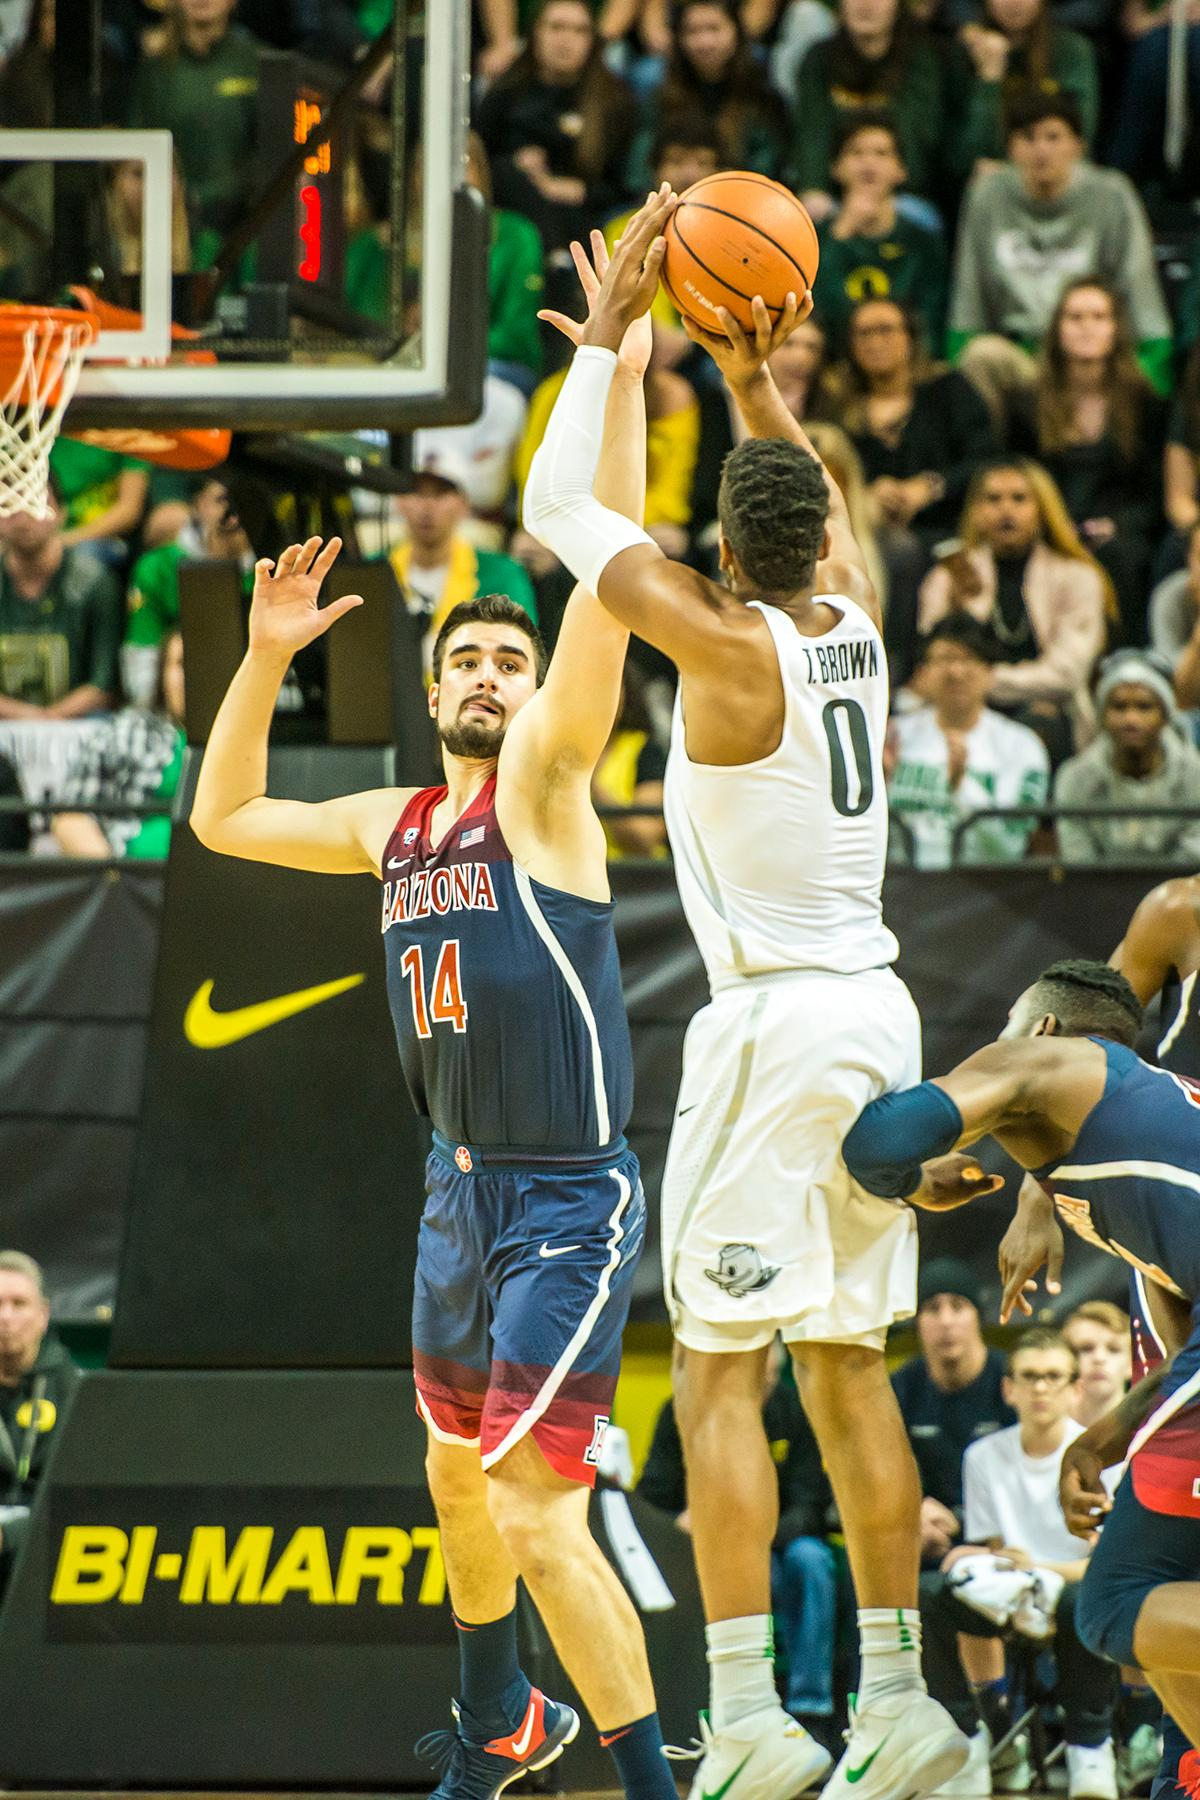 Oregon's Troy Brown (0) shoots over Arizona's Dusan Ristic (14) in their matchup at Matthew Knight Arena Sturday. The Ducks upset the fourteenth ranked Wildcats 98-93 in a stunning overtime win in front of a packed house of over 12,000 fans for their final home game to improve to a 19-10 (9-7 PAC-12) record on the season. Oregon will finish out regular season play on the road in Washington next week against Washington State on Thursday, then Washington on the following Saturday. (Photo by Colin Houck)